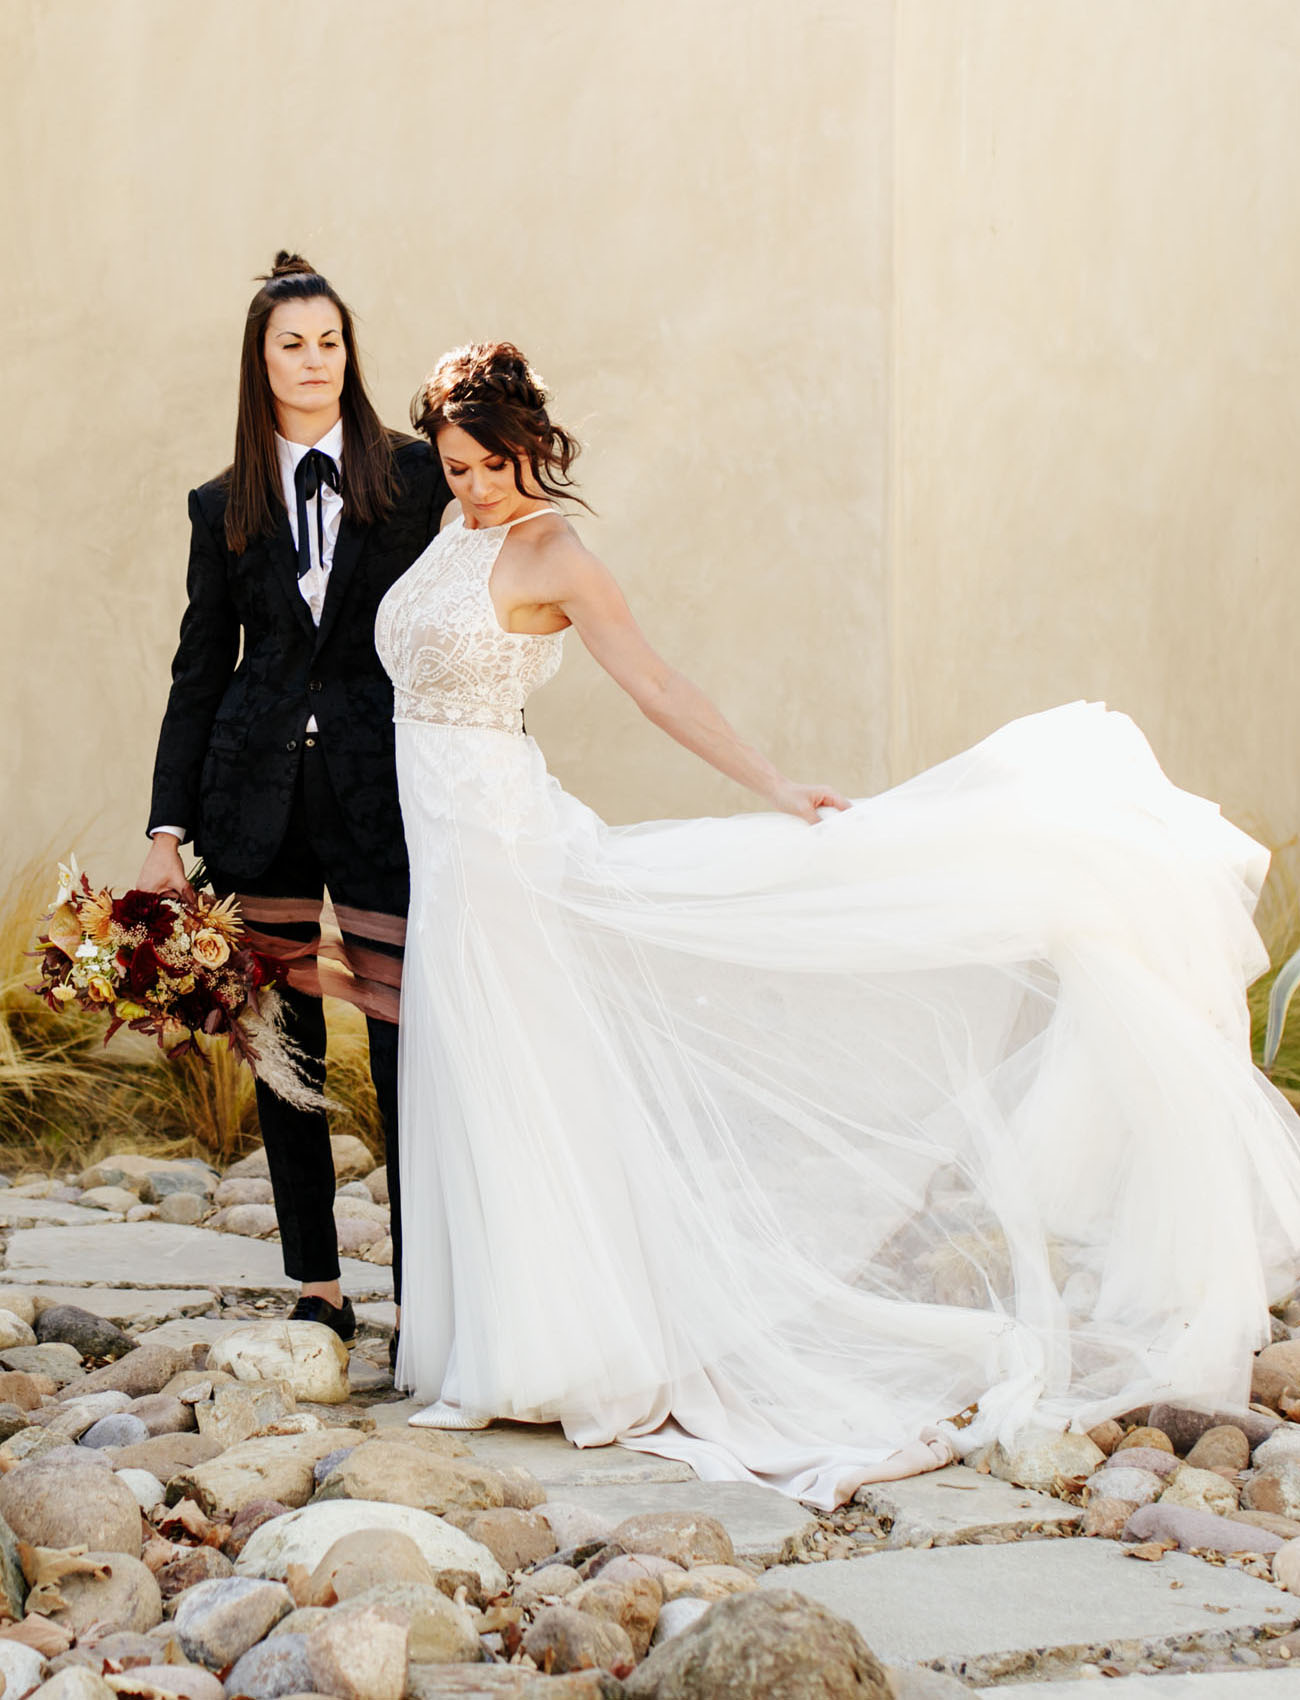 This couple went for a gorgeous wedding with impeccable taste and lots of dramatic touches